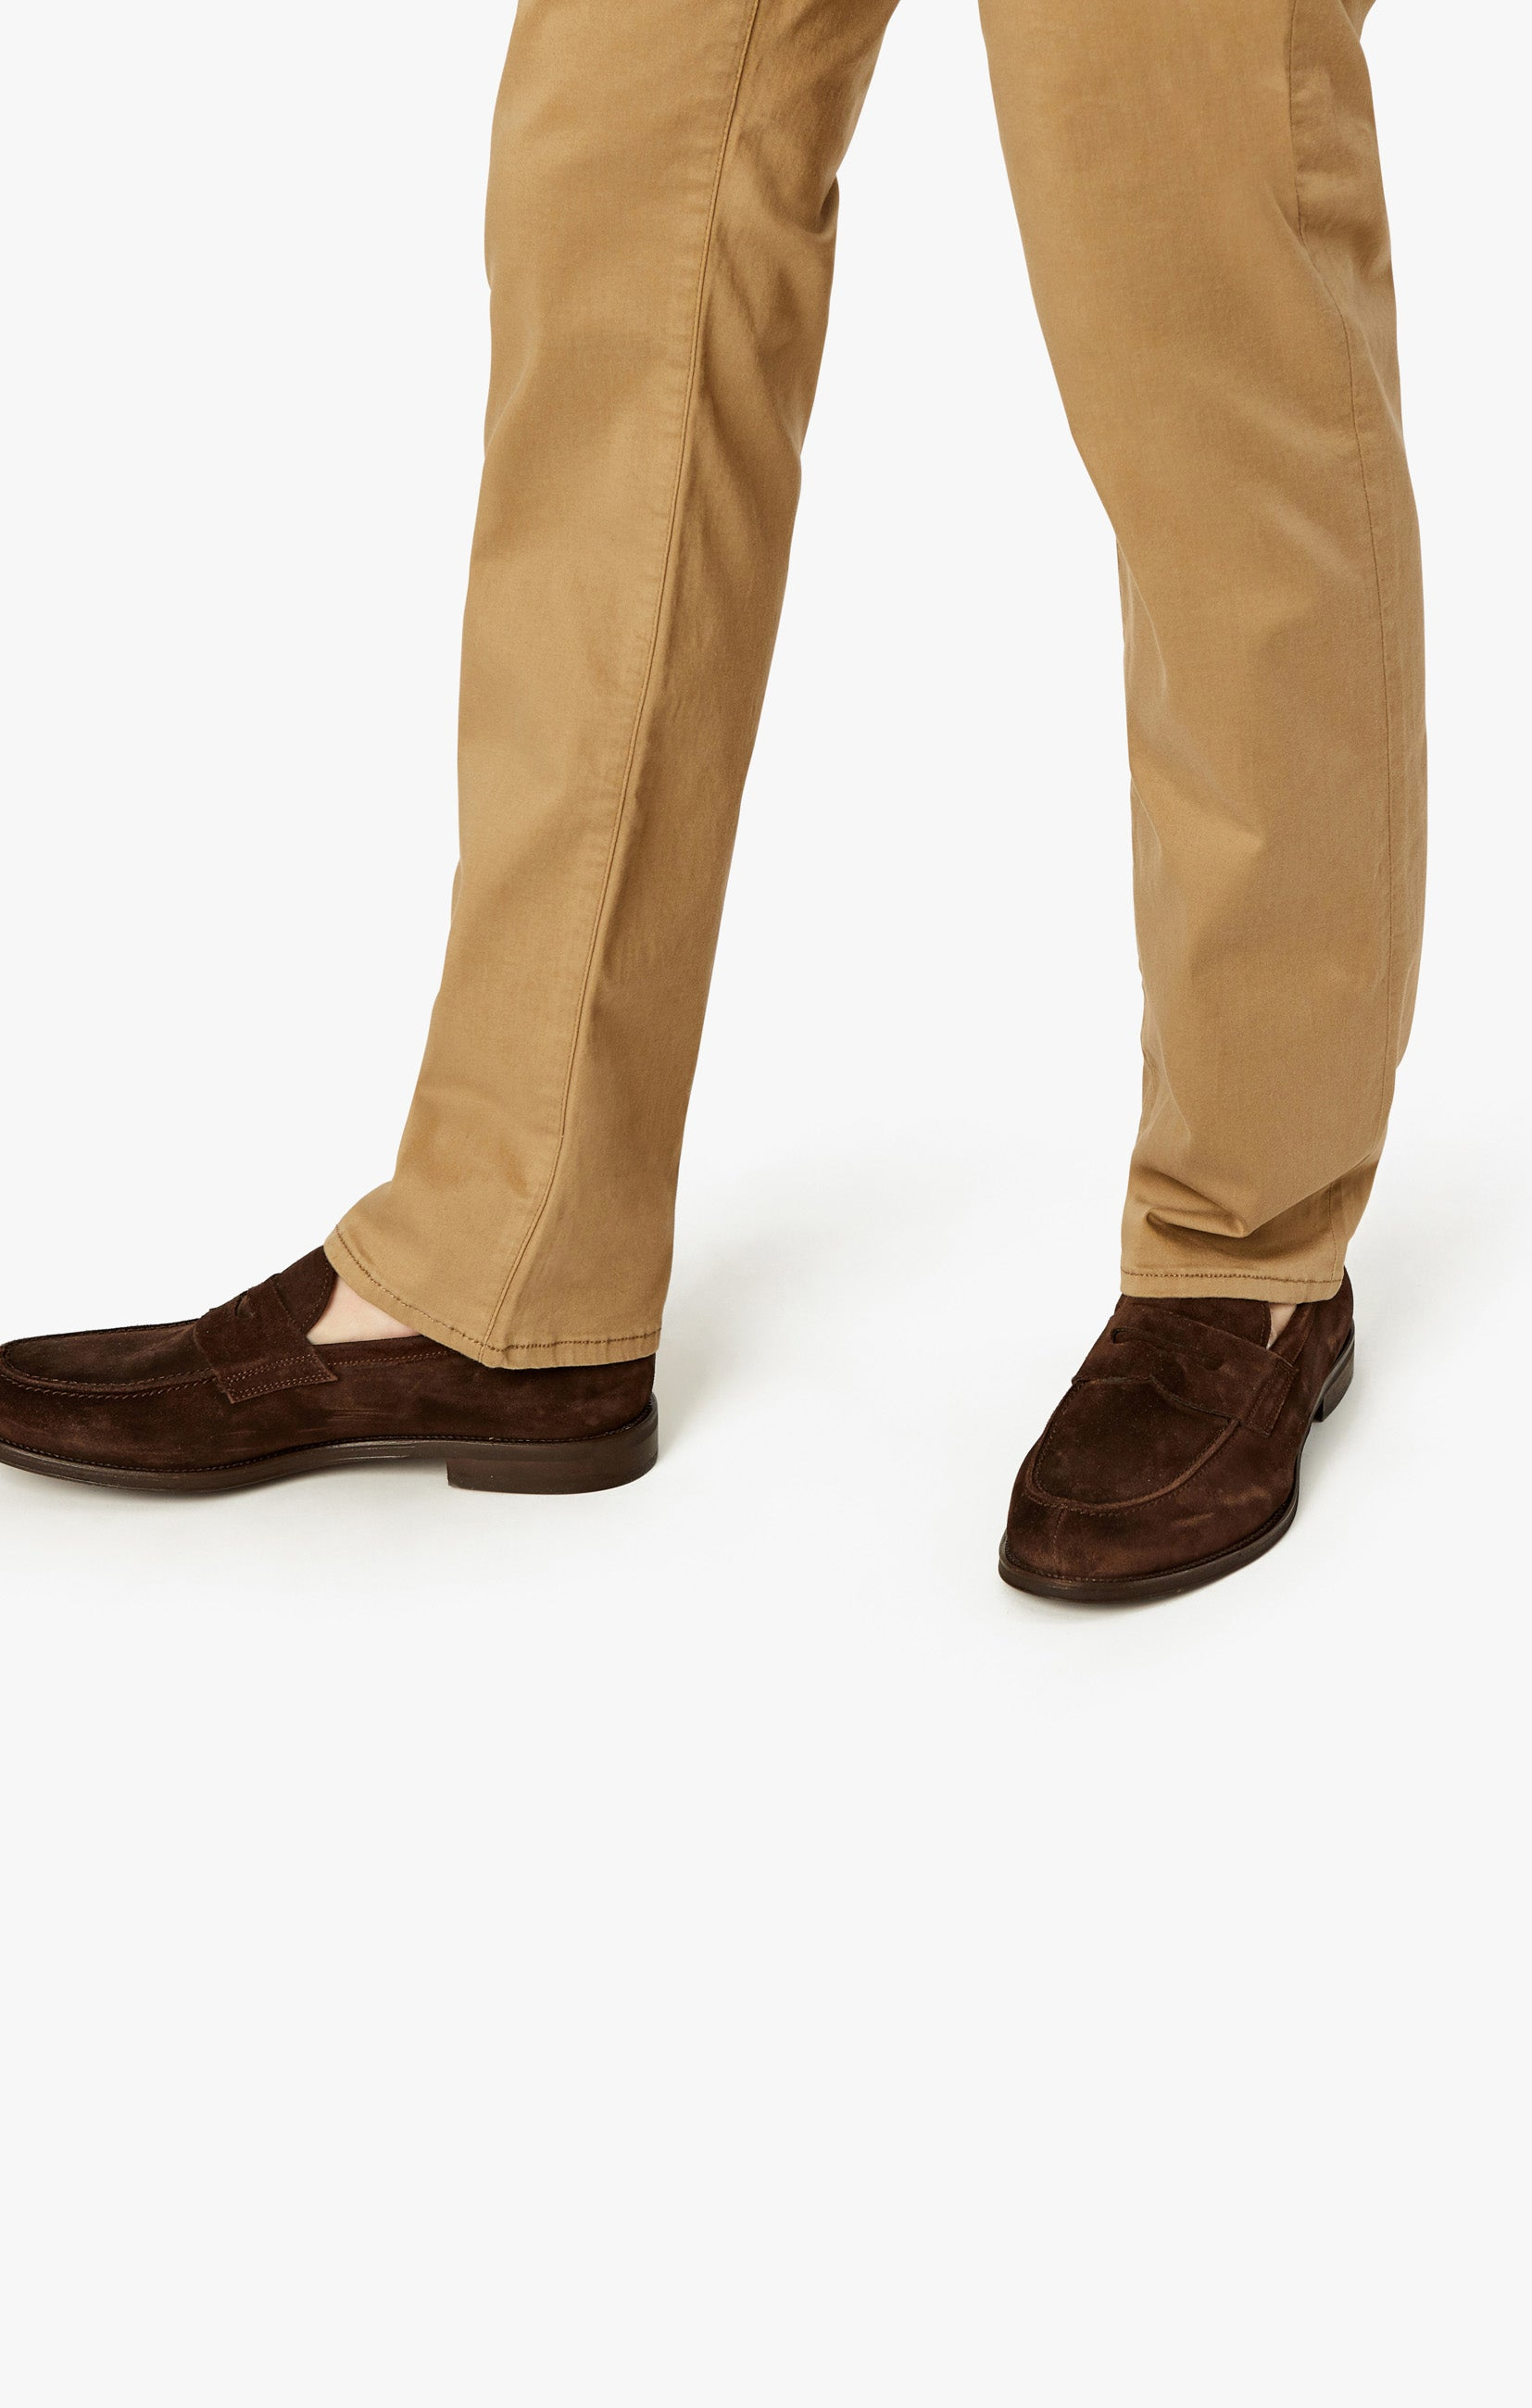 Courage Straight Leg Pants In Khaki Twill Image 6